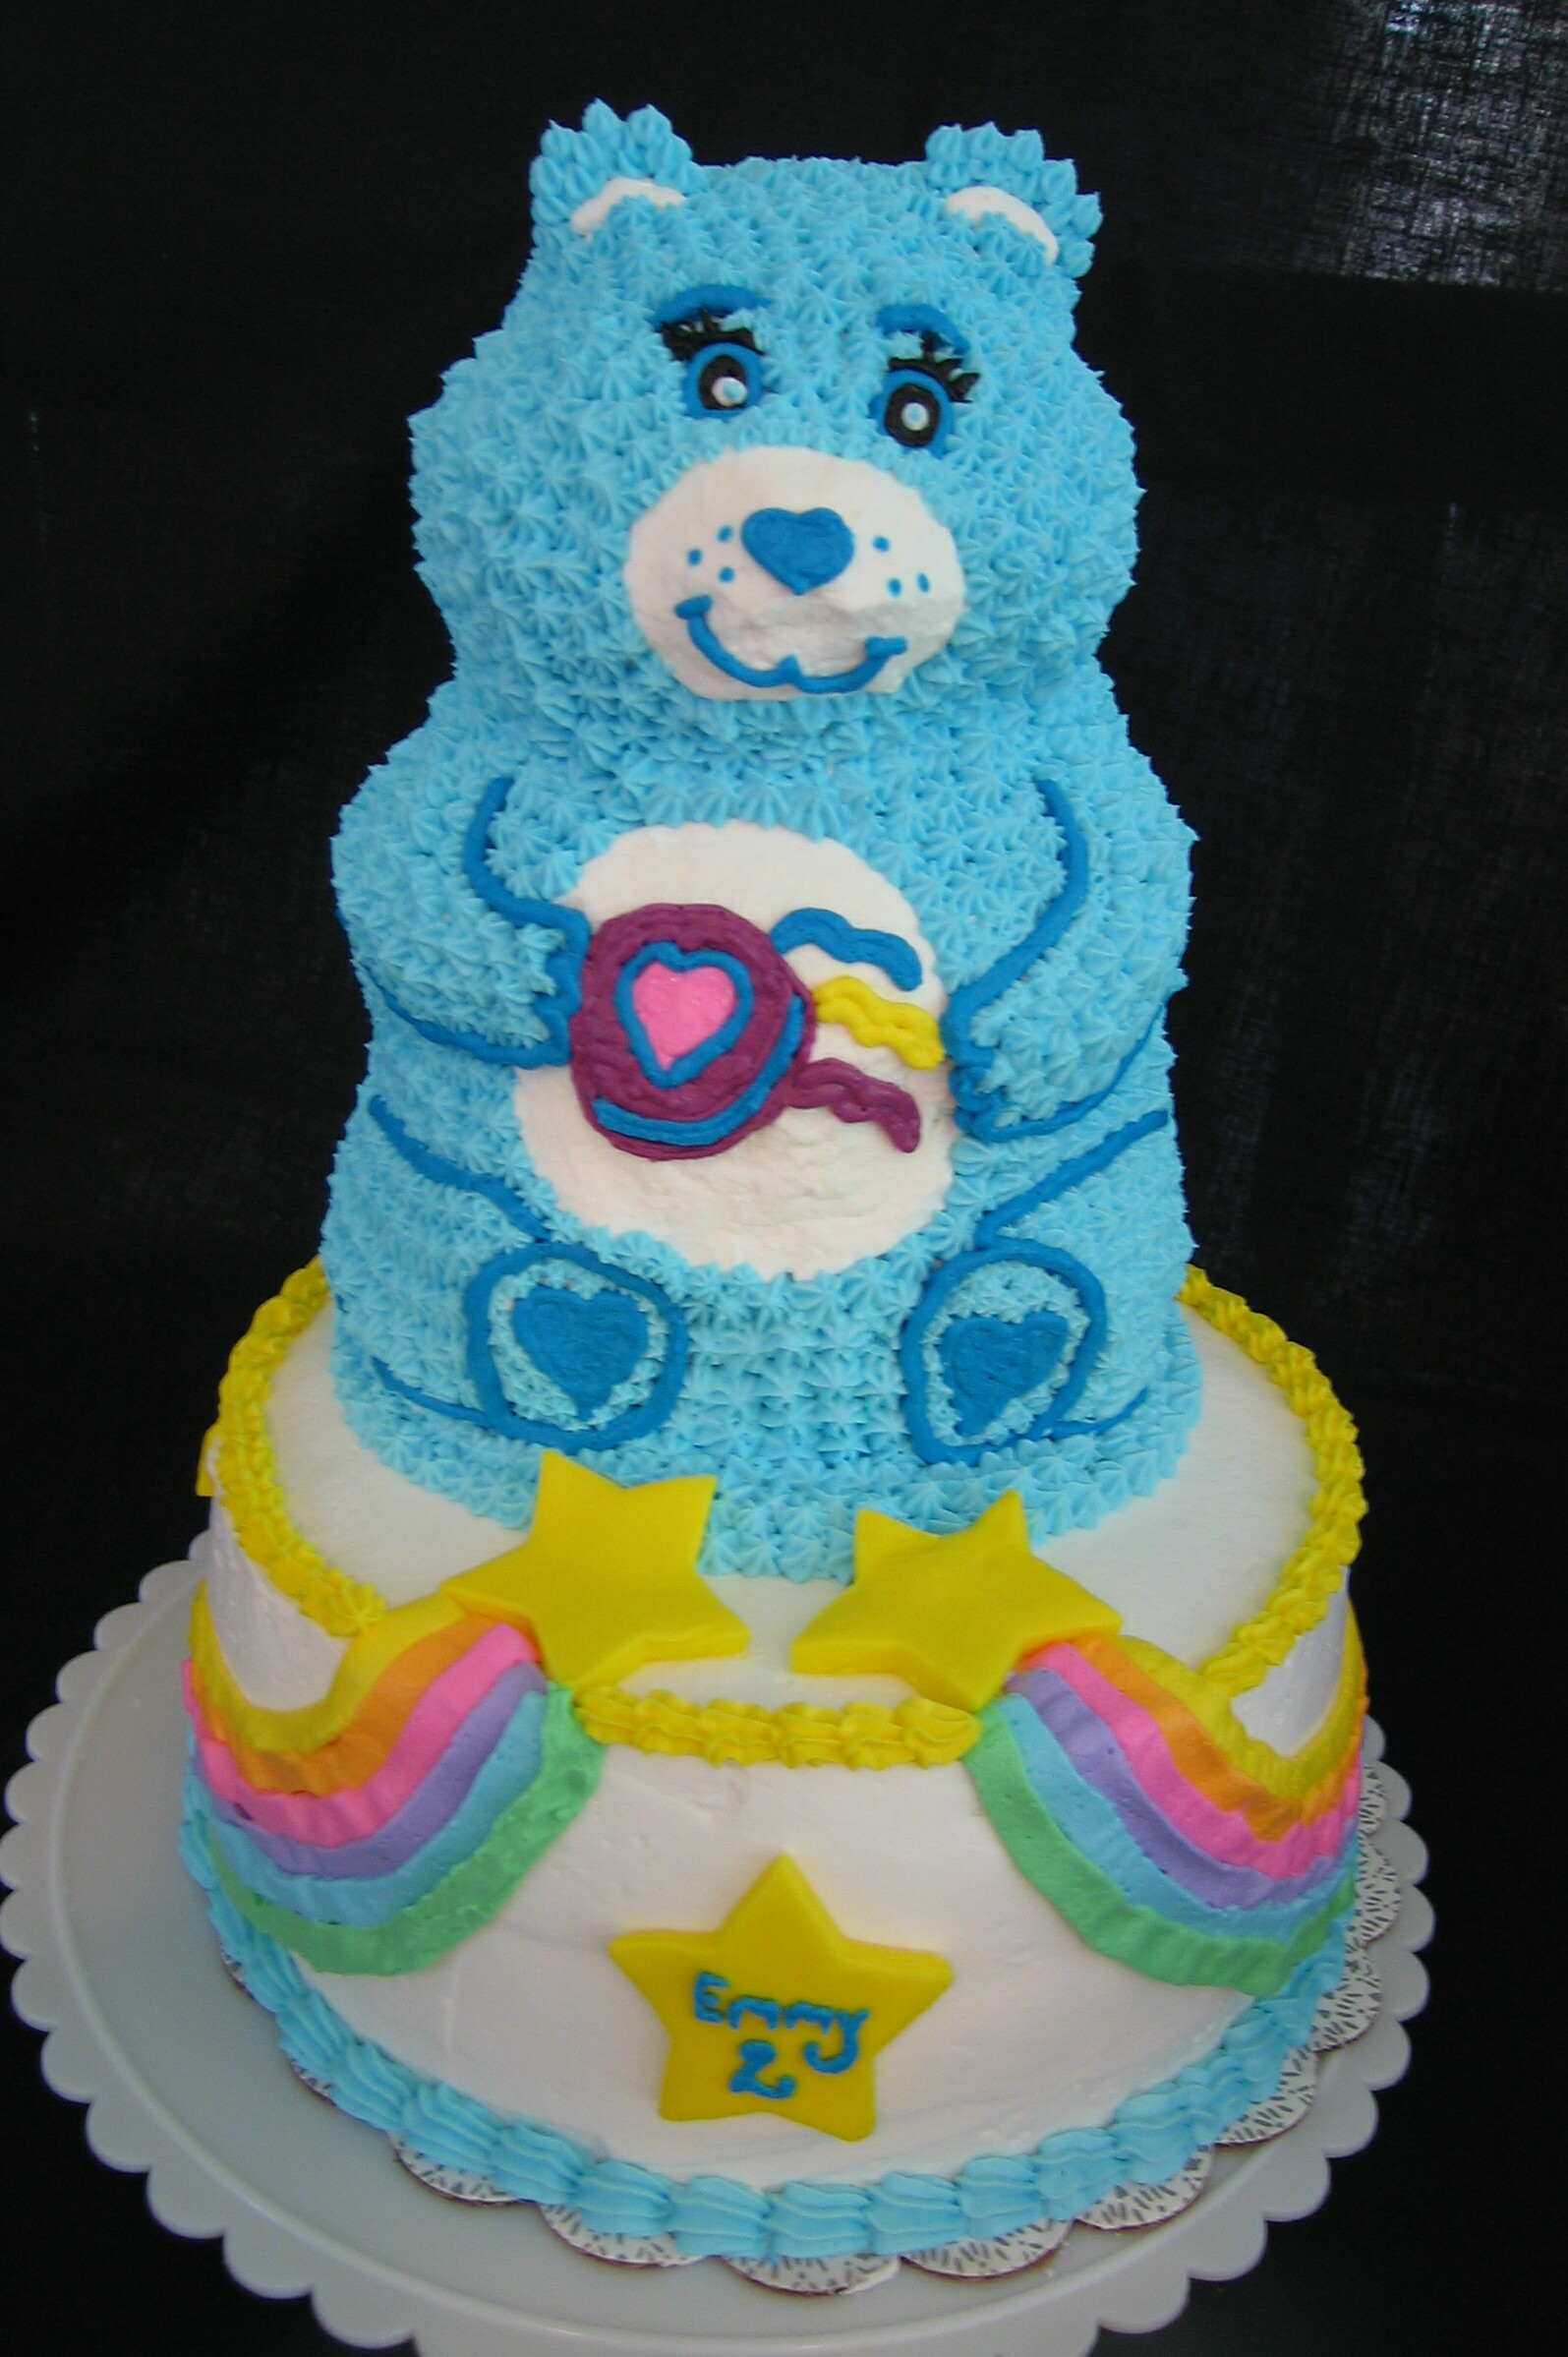 Care Bear - Copy